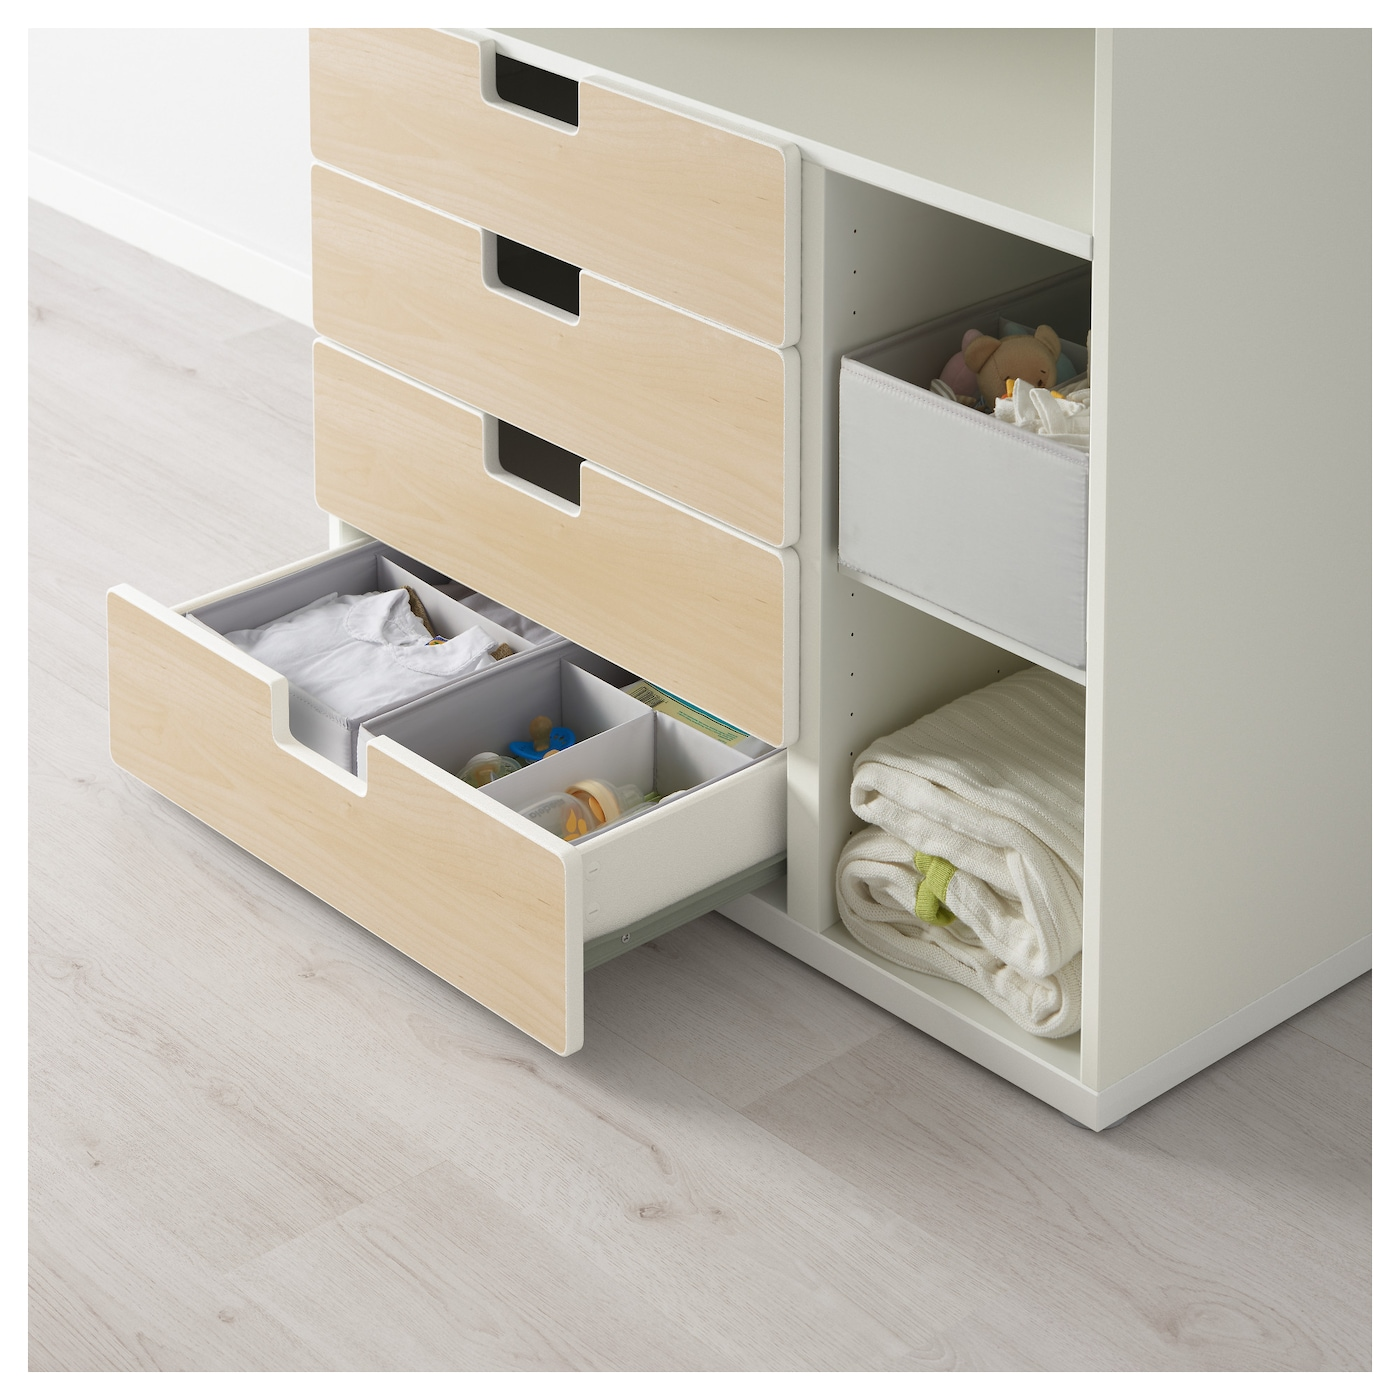 IKEA STUVA changing table with 4 drawers